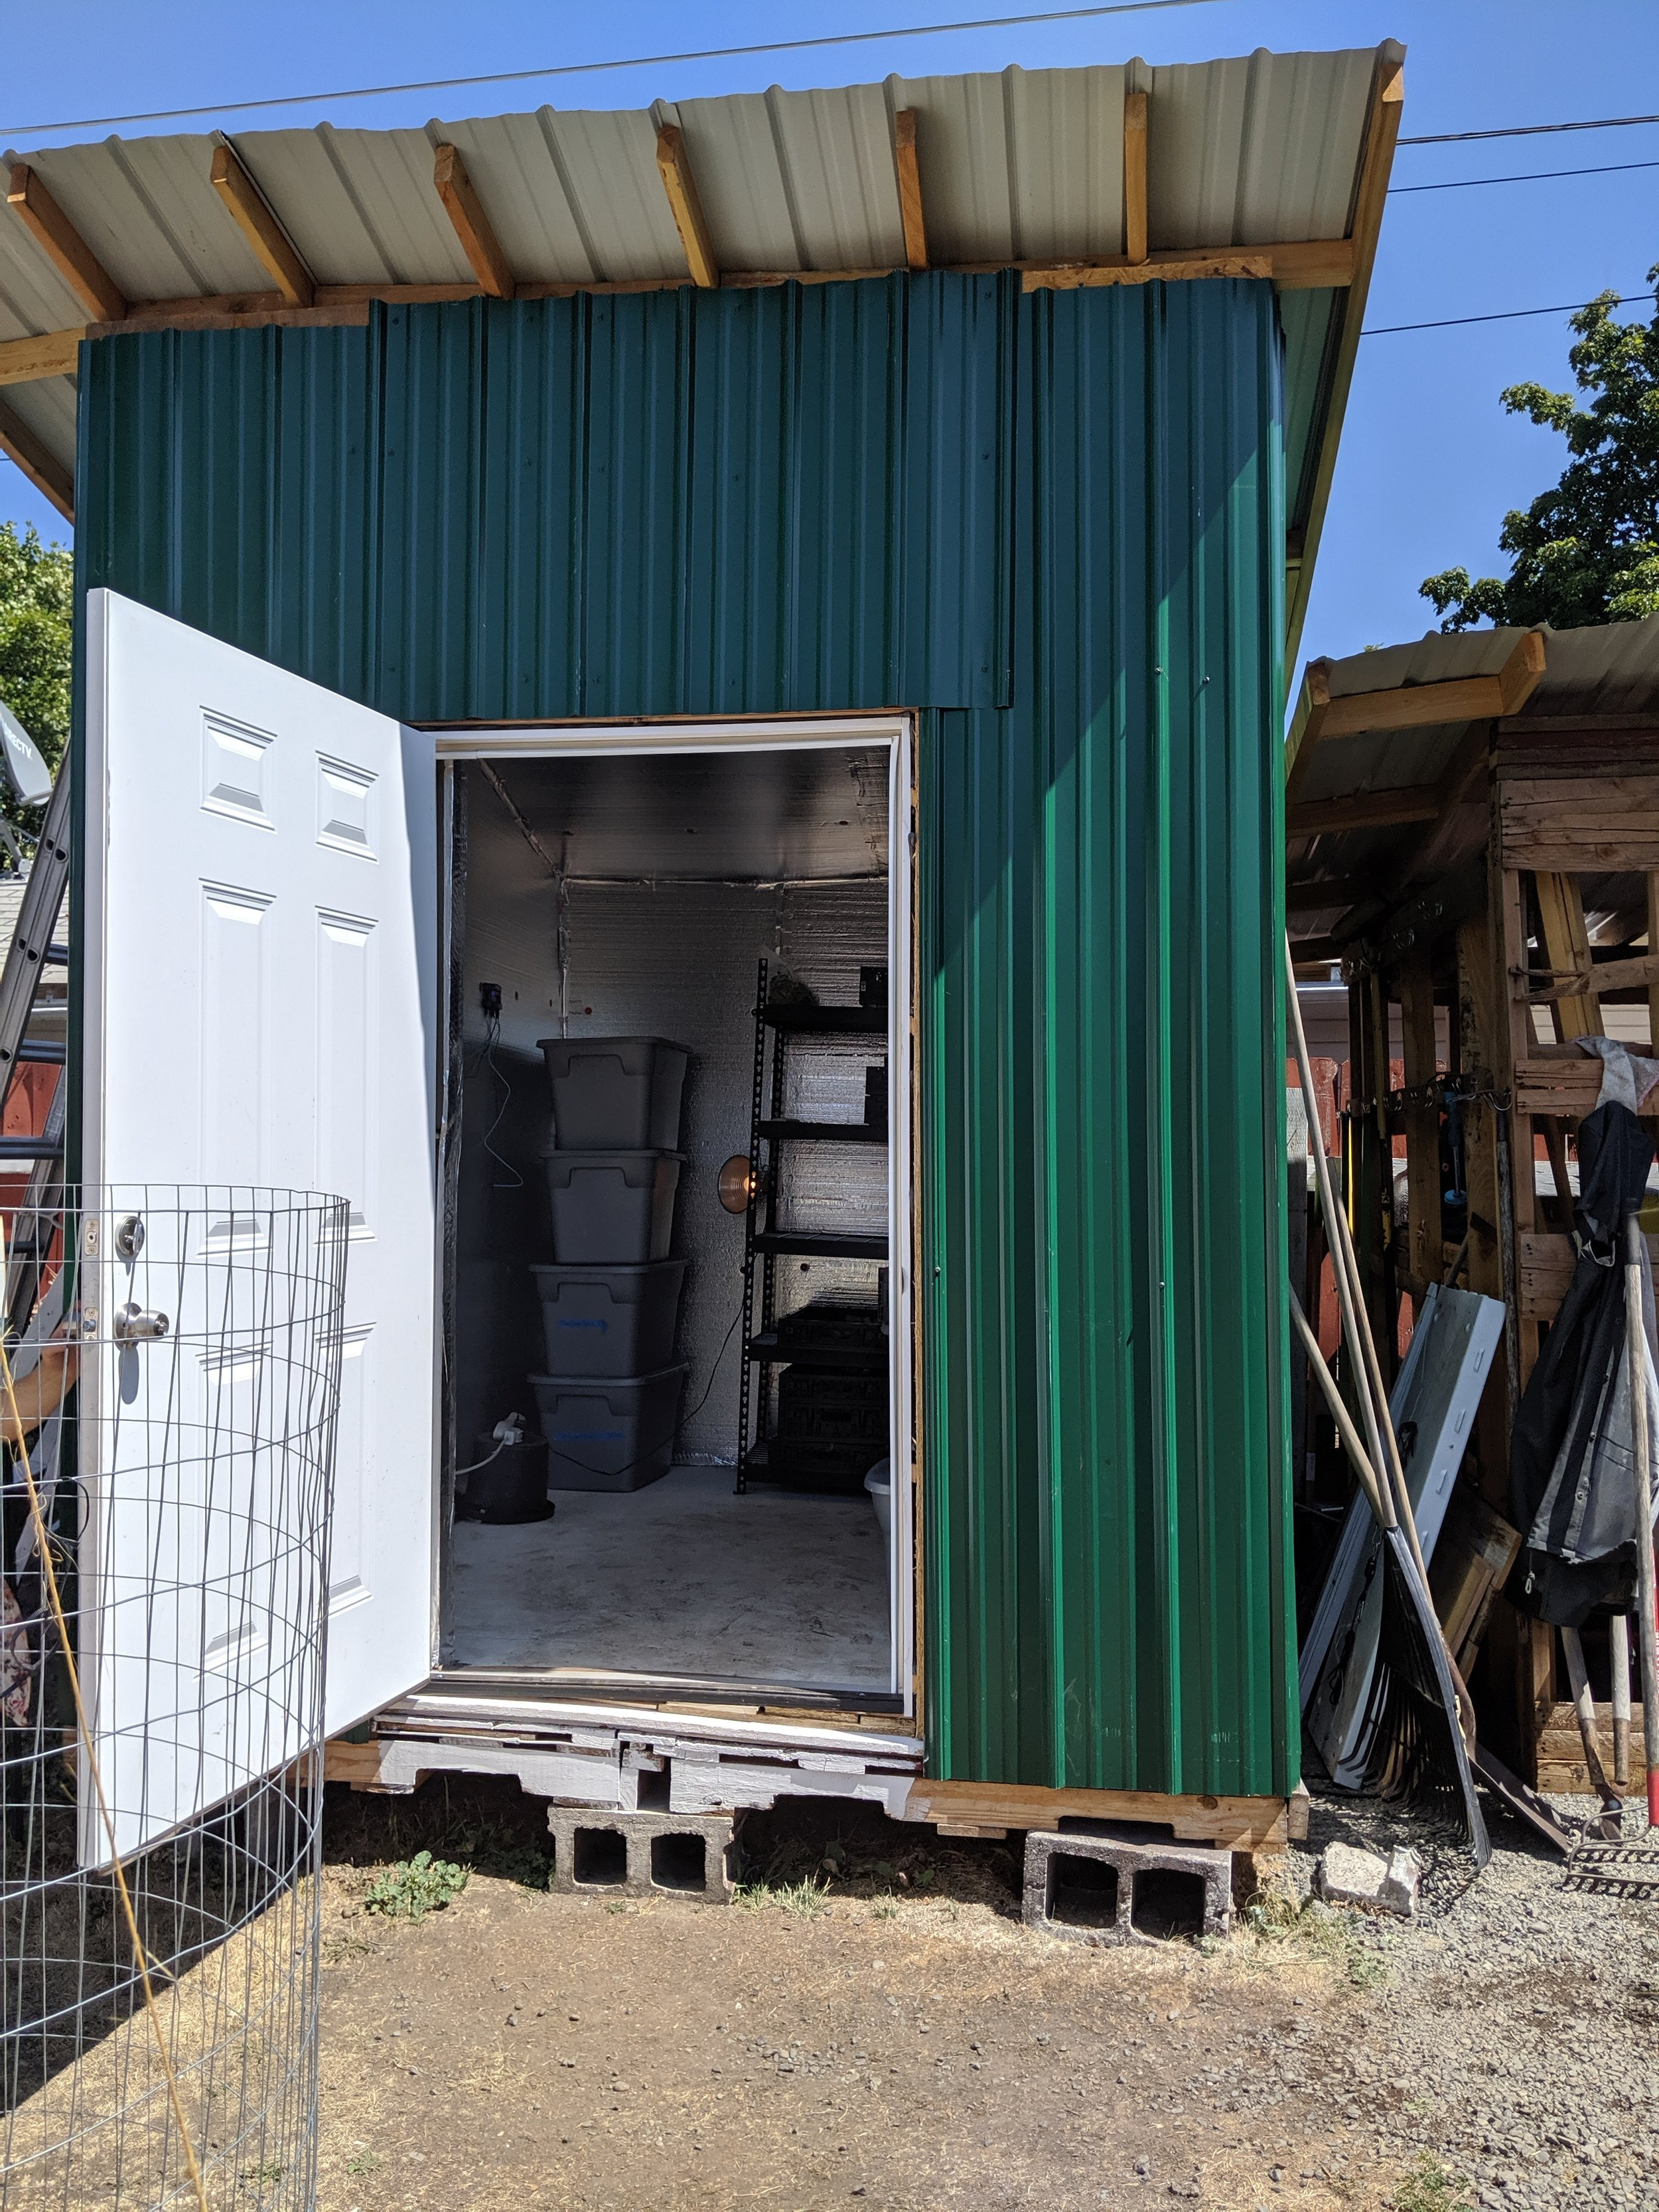 The walk-in cooler was made of almost entirely recycled materials!